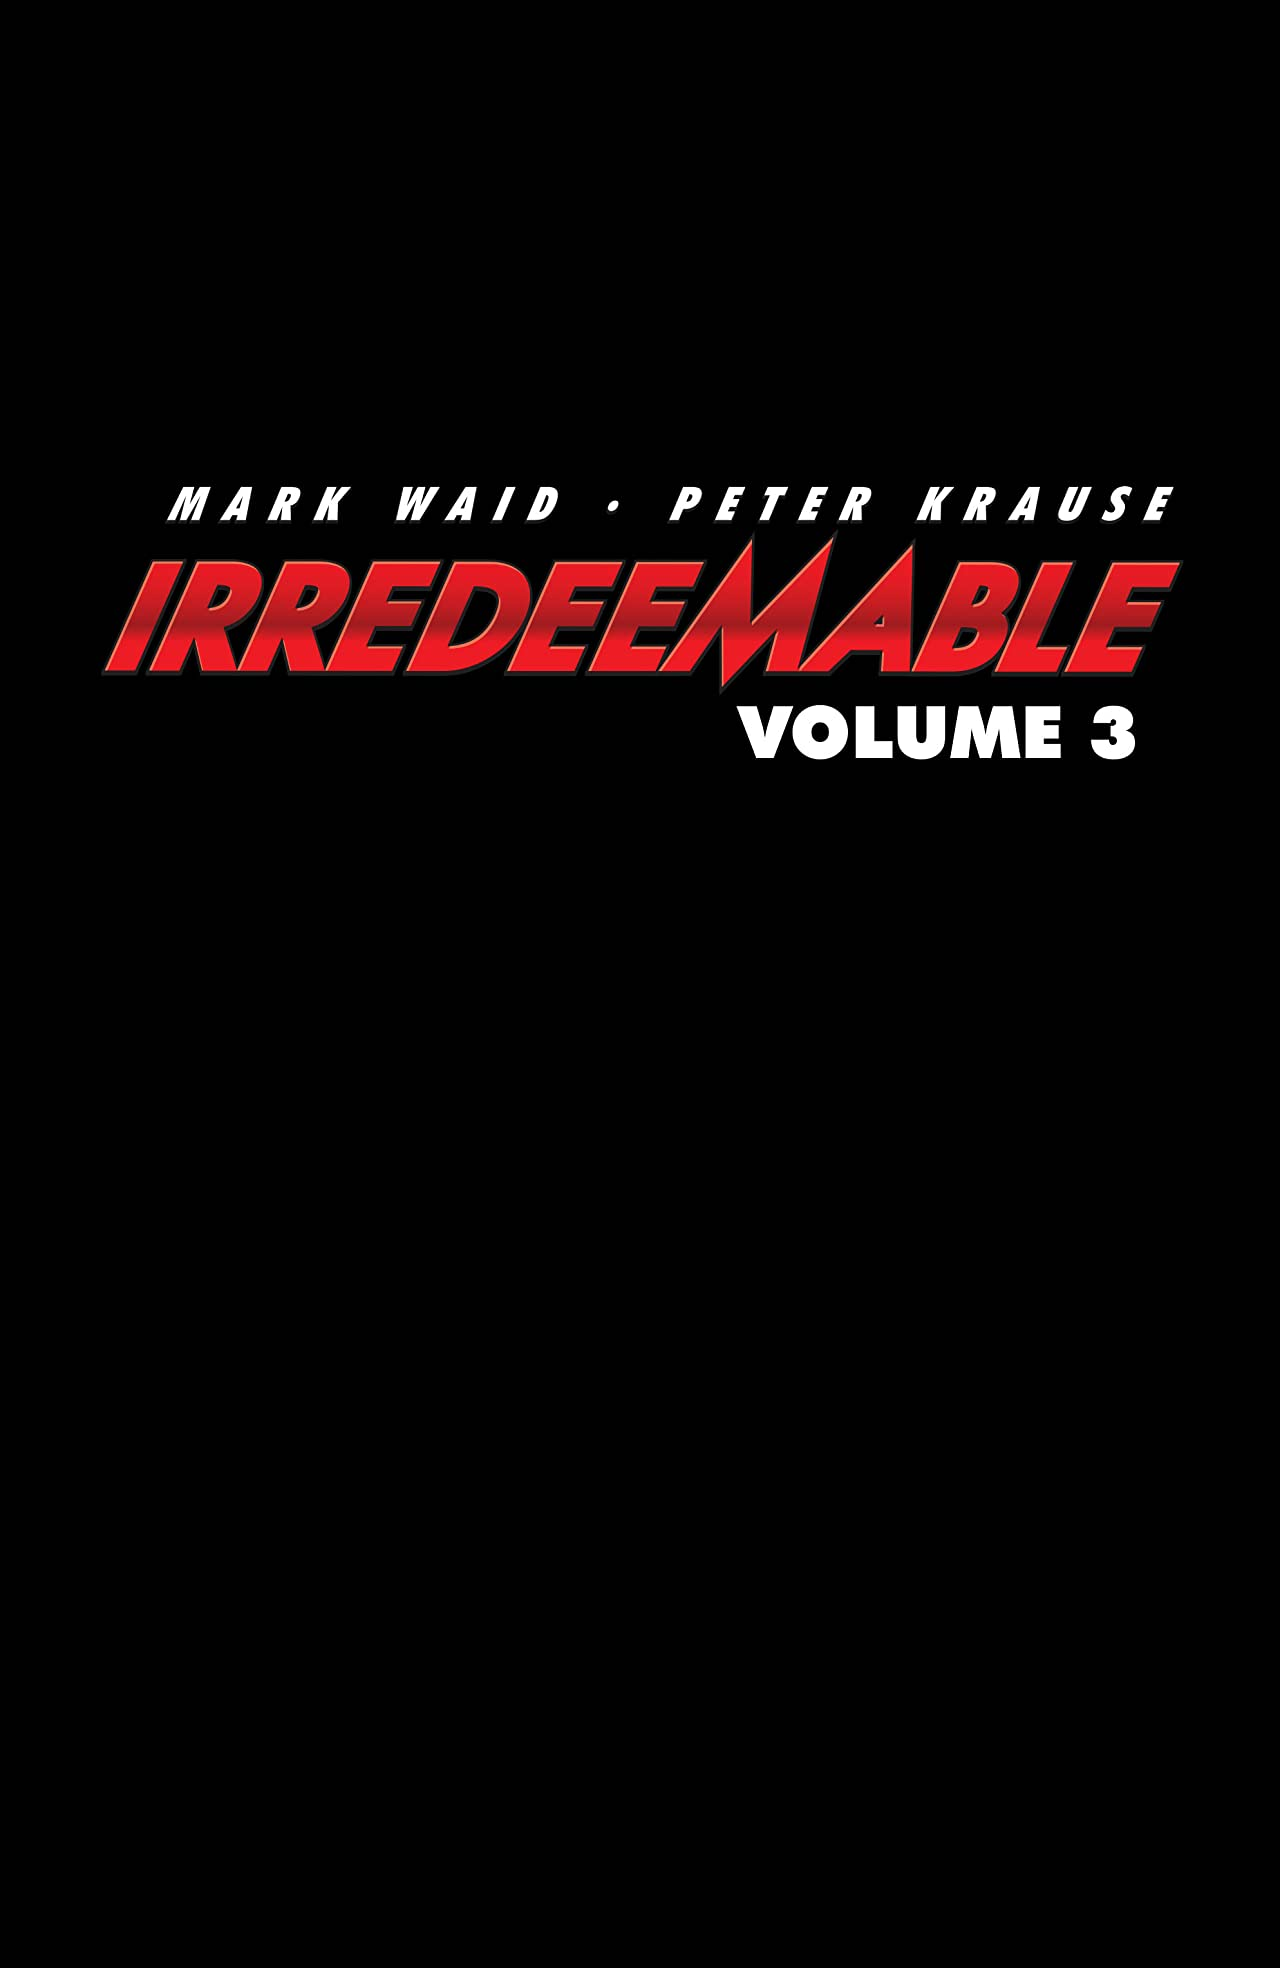 Irredeemable Vol. 3